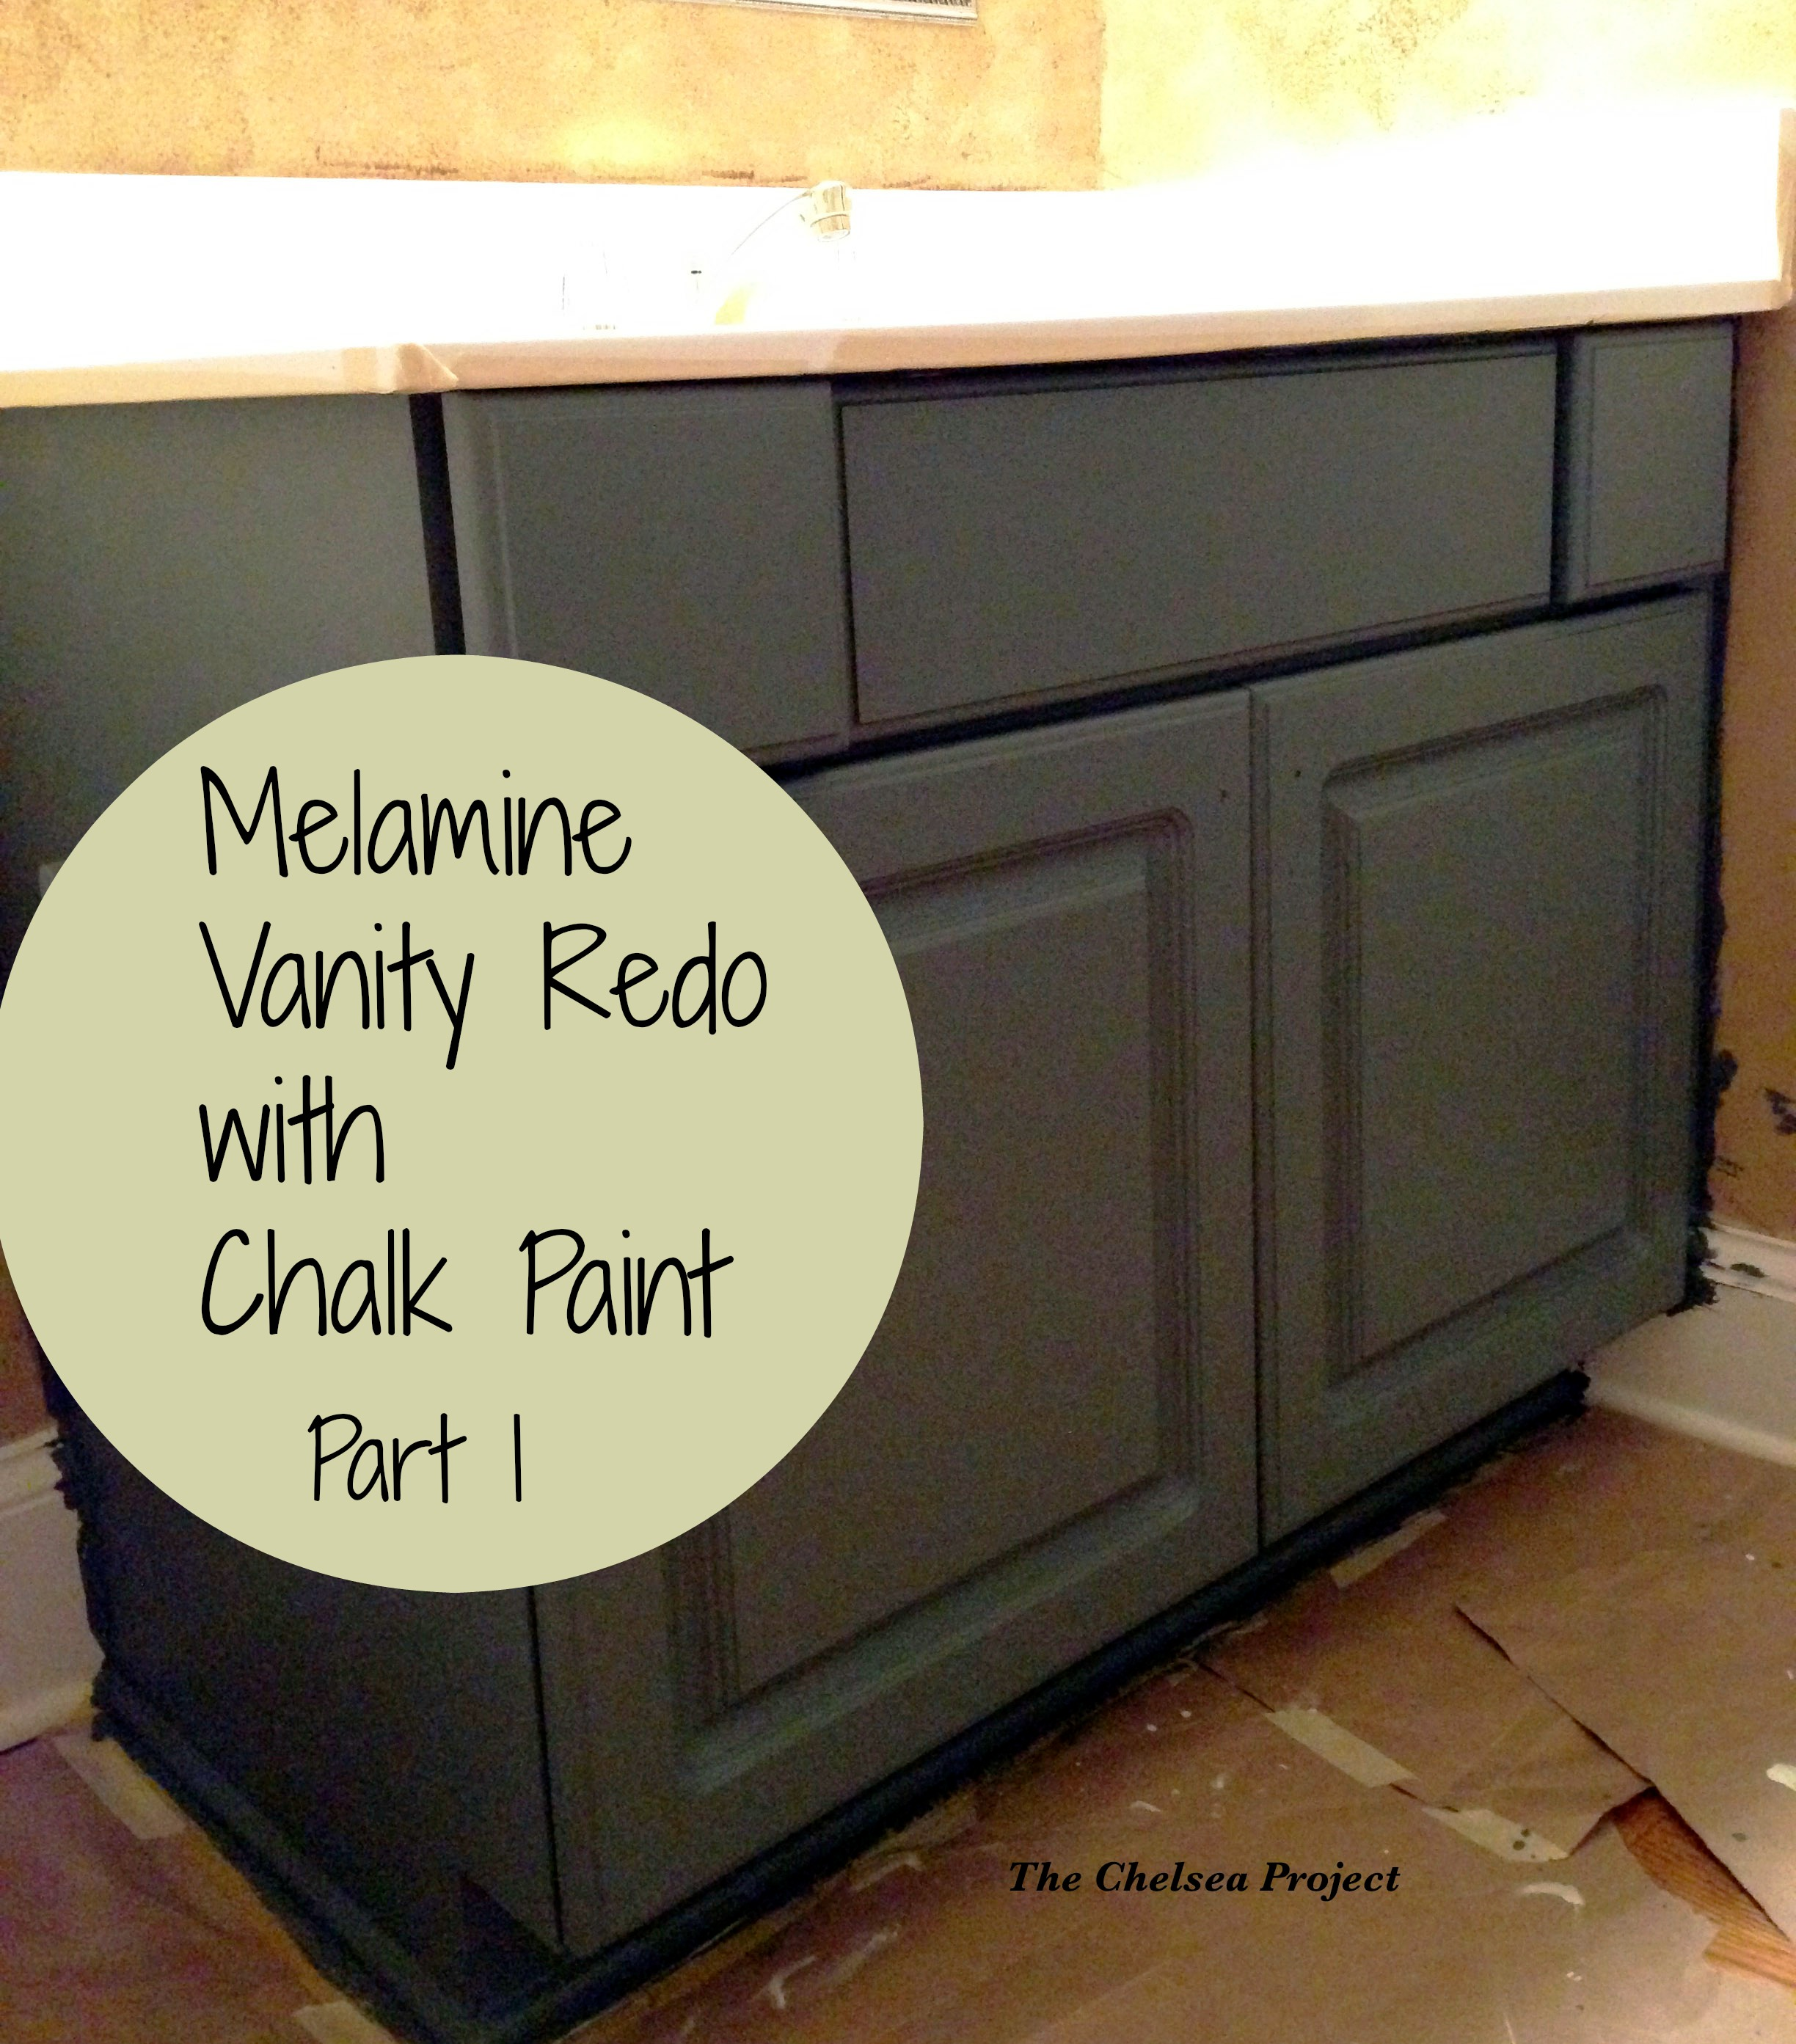 Melamine Bath Vanity Refinished Without Stripping, Sanding